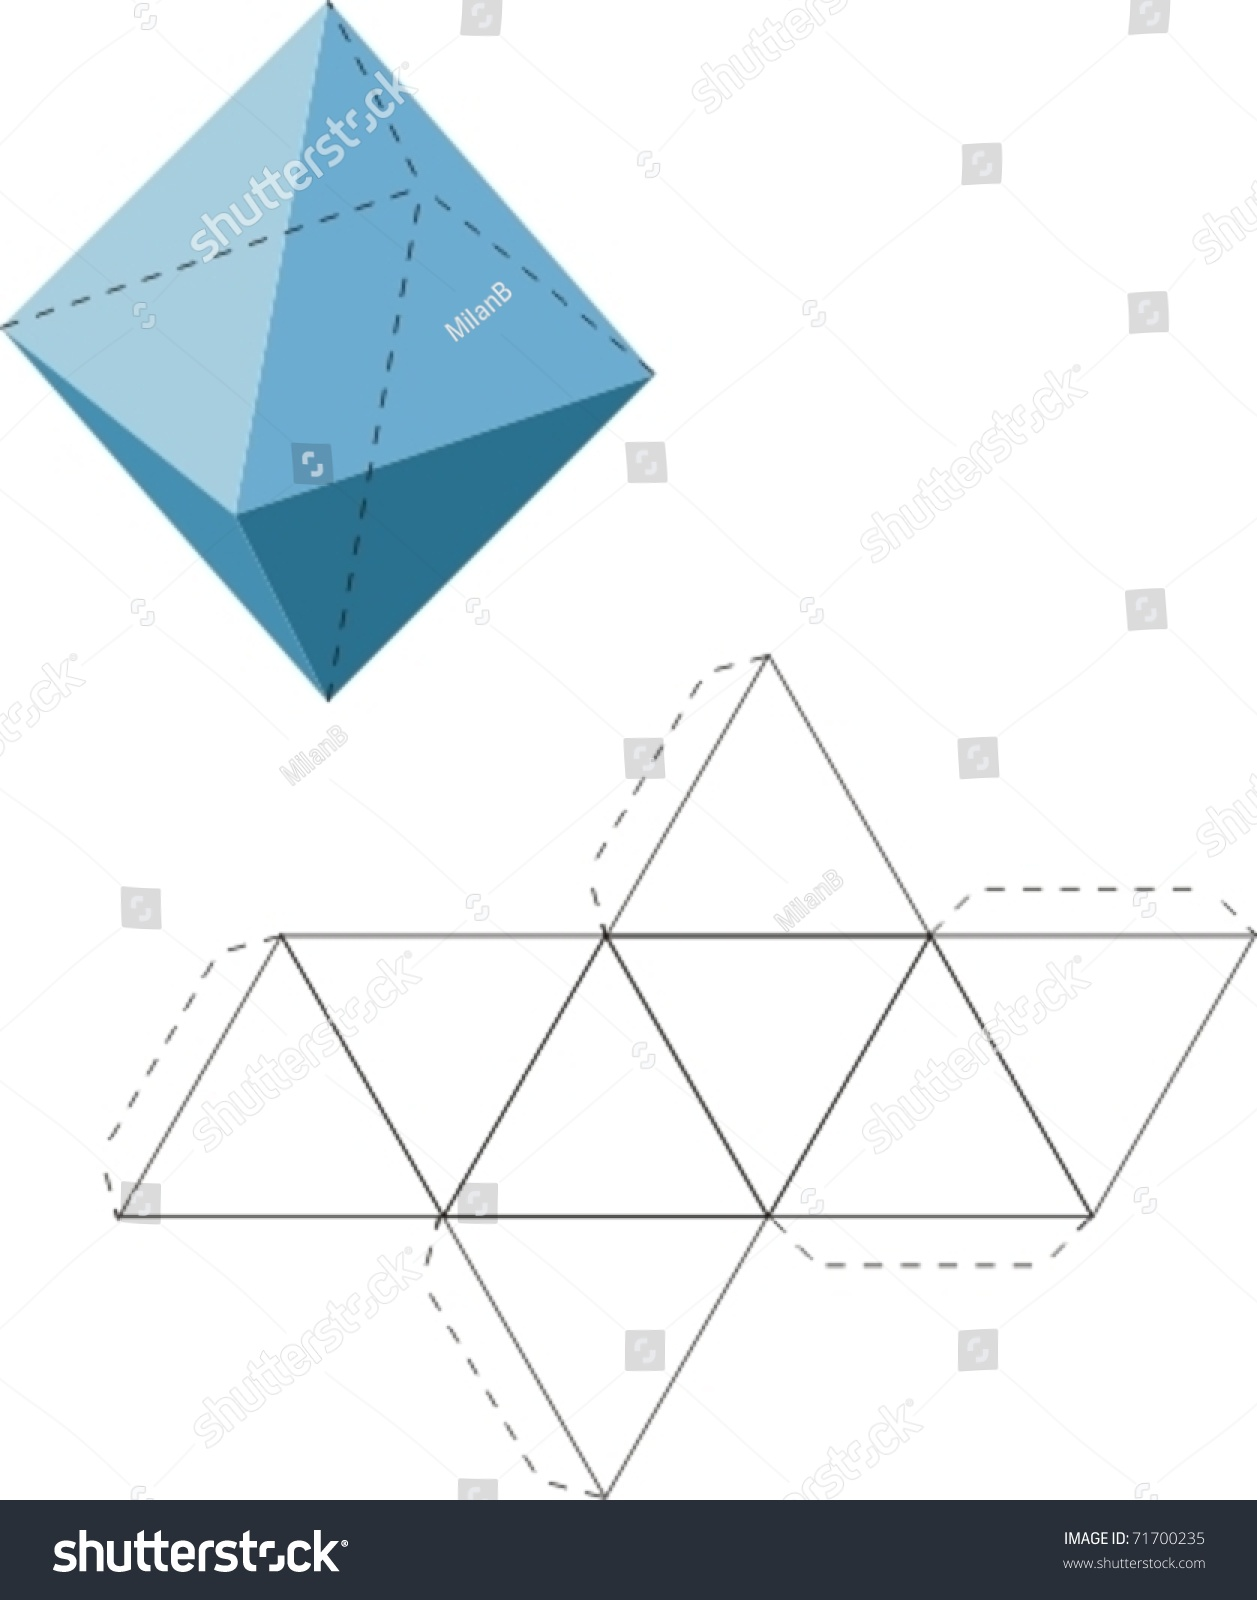 Octahedron Net Stock Vector 71700235